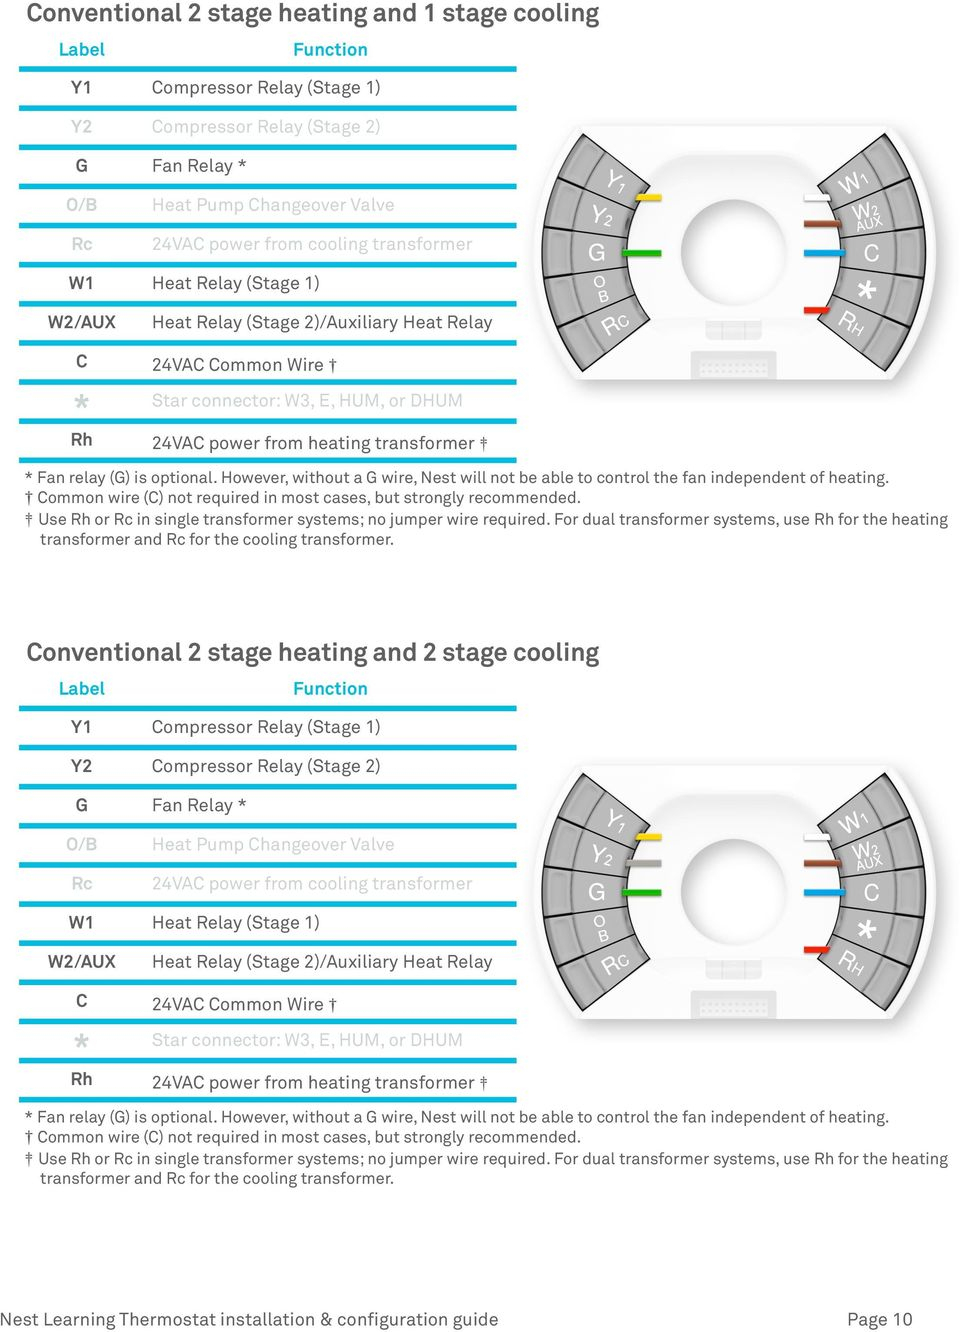 Nest Learning Thermostat Pro Installation & Configuration Guide - Pdf - Nest Pro Dual Fuel Wiring Diagram